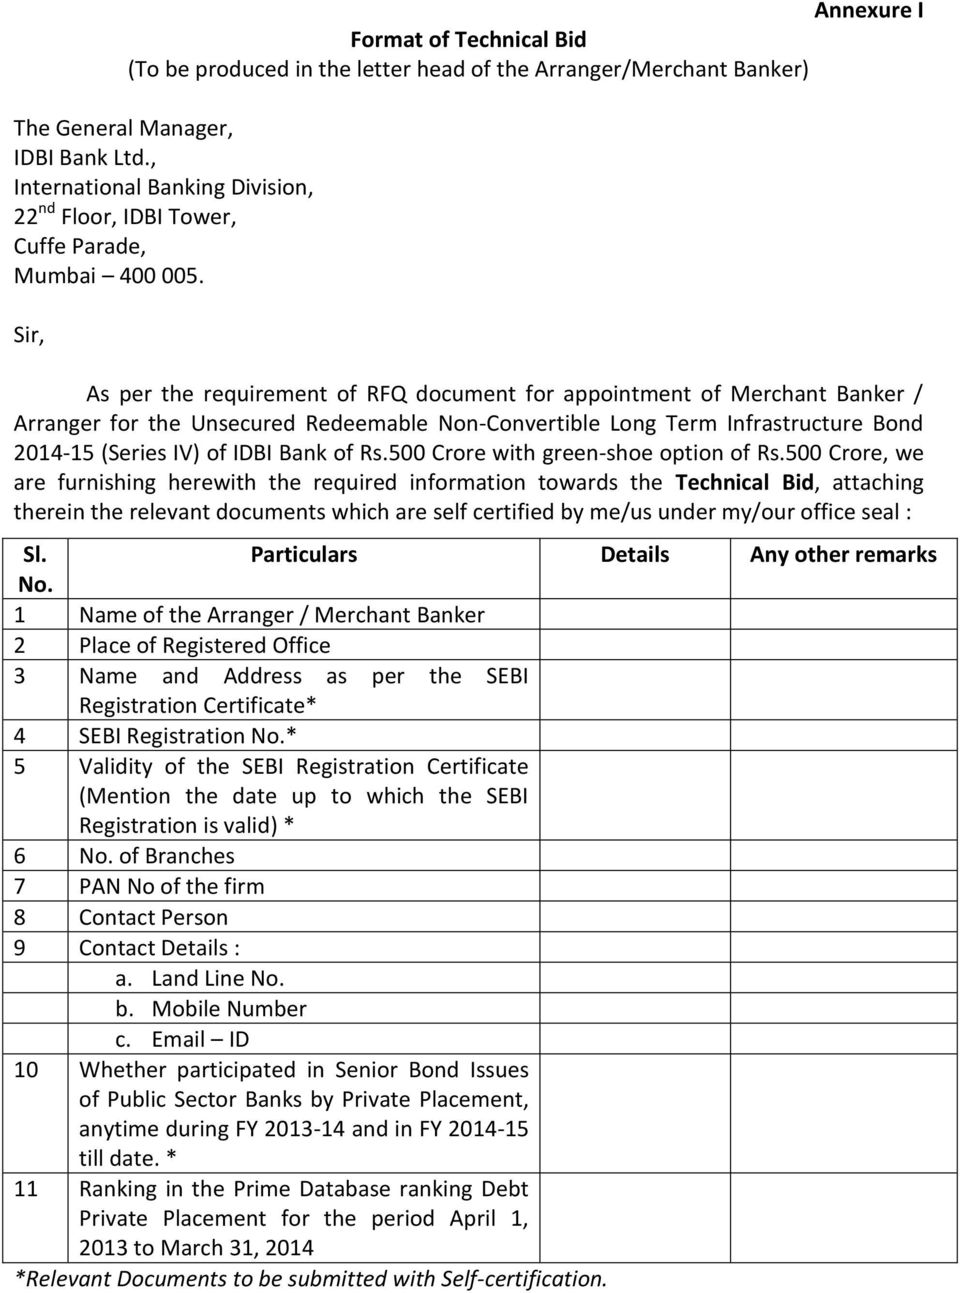 Sir, As per the requirement of RFQ document for appointment of Merchant Banker / Arranger for the Unsecured Redeemable Non-Convertible Long Term Infrastructure Bond 2014-15 (Series IV) of IDBI Bank